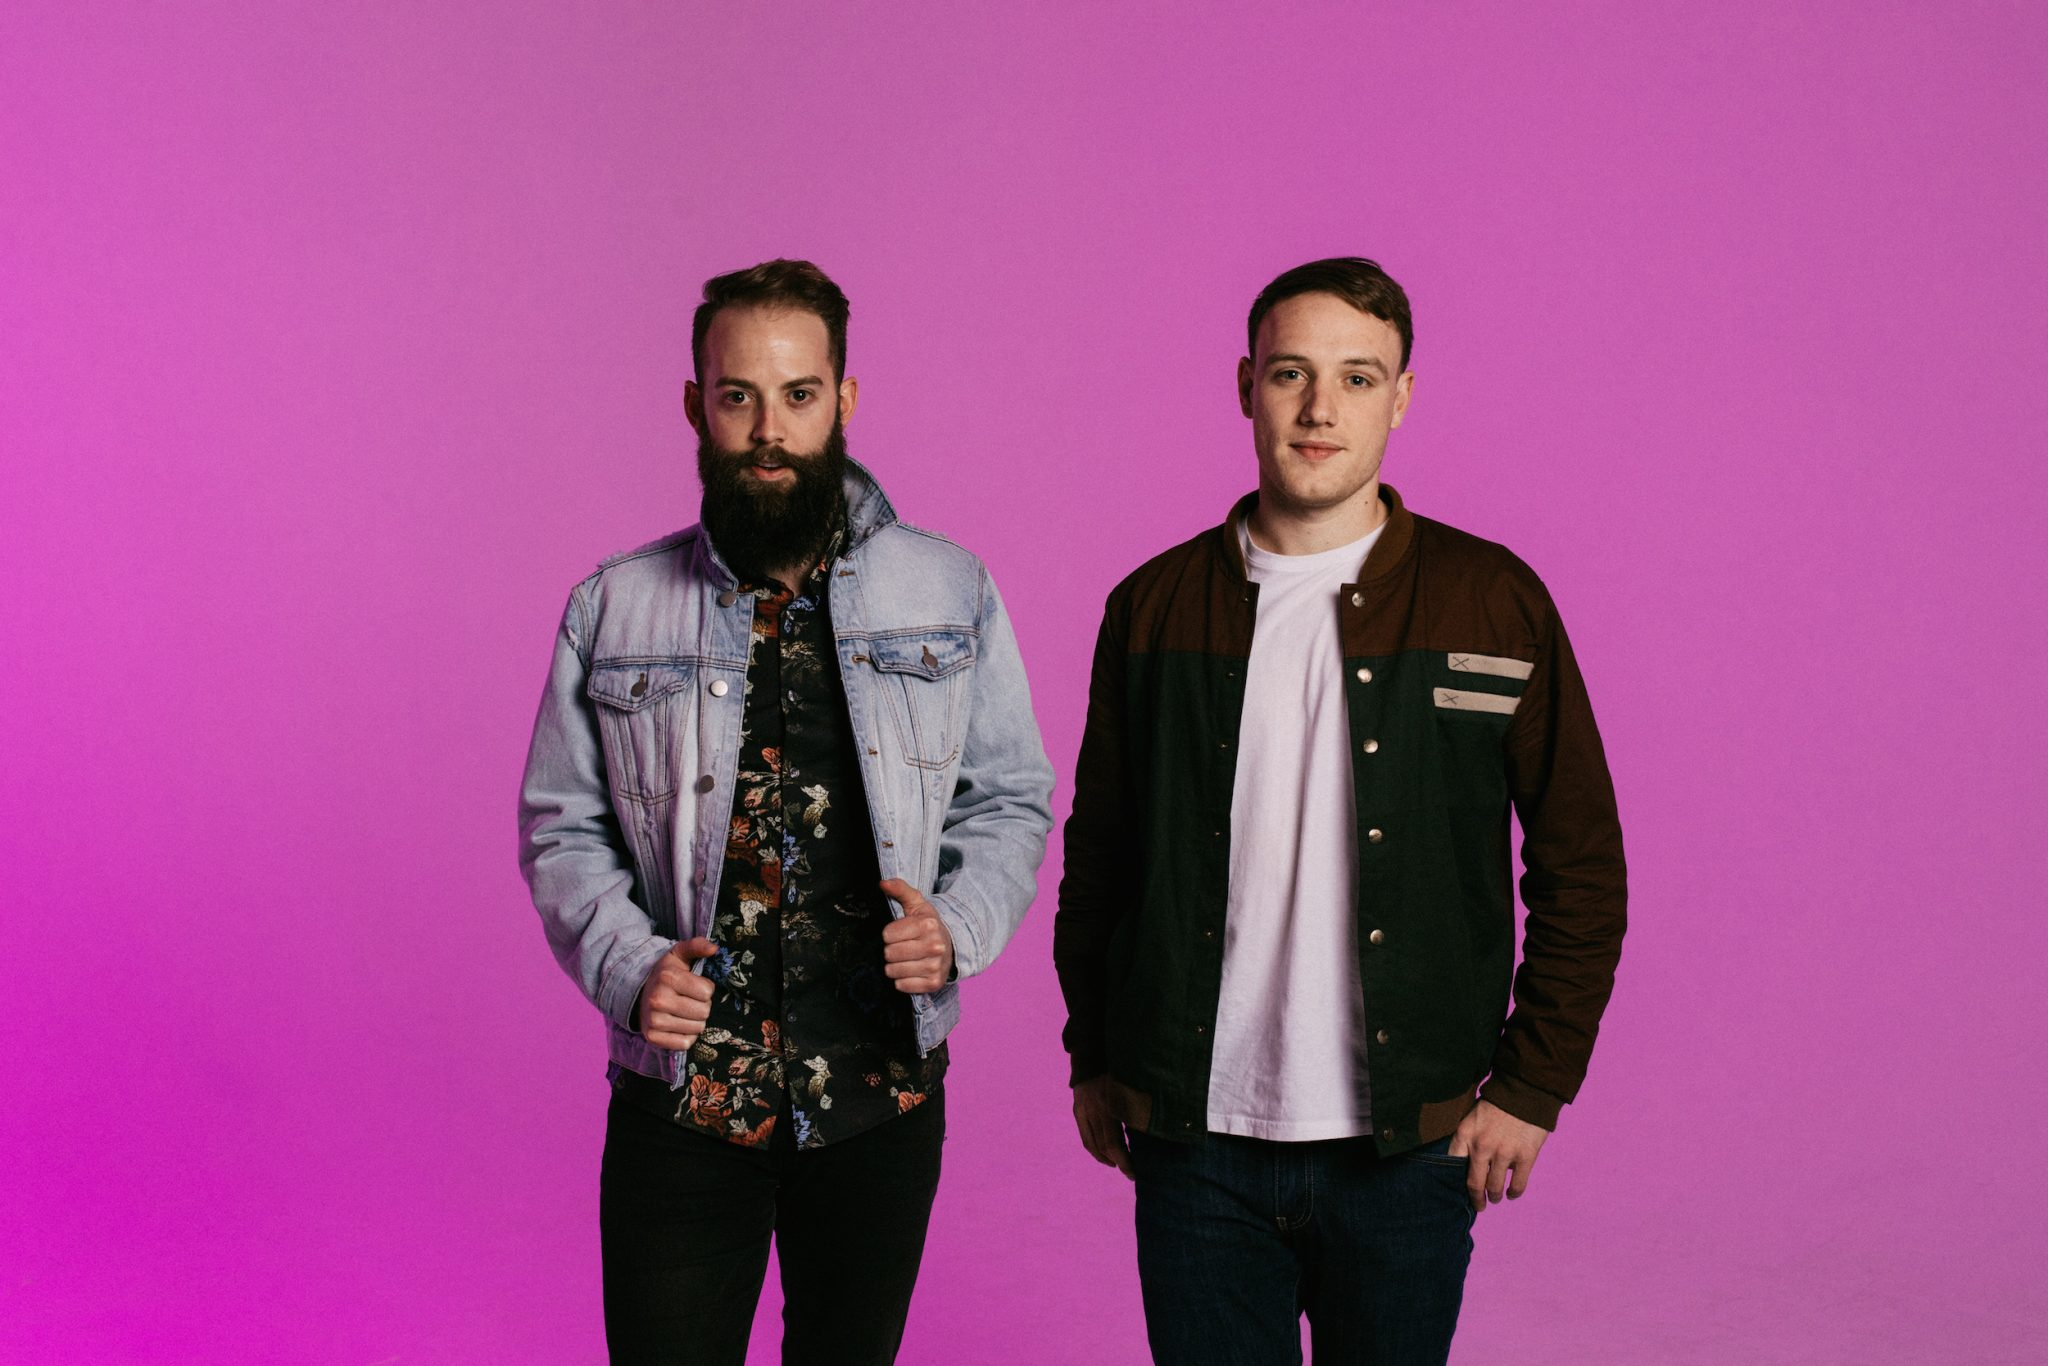 listen-do you want me-by-the roosevelts-indie music-new music-indie pop-music blog-indie blog-wolf in a suit-wolfinasuit-wolf in a suit blog-wolf in a suit music blog